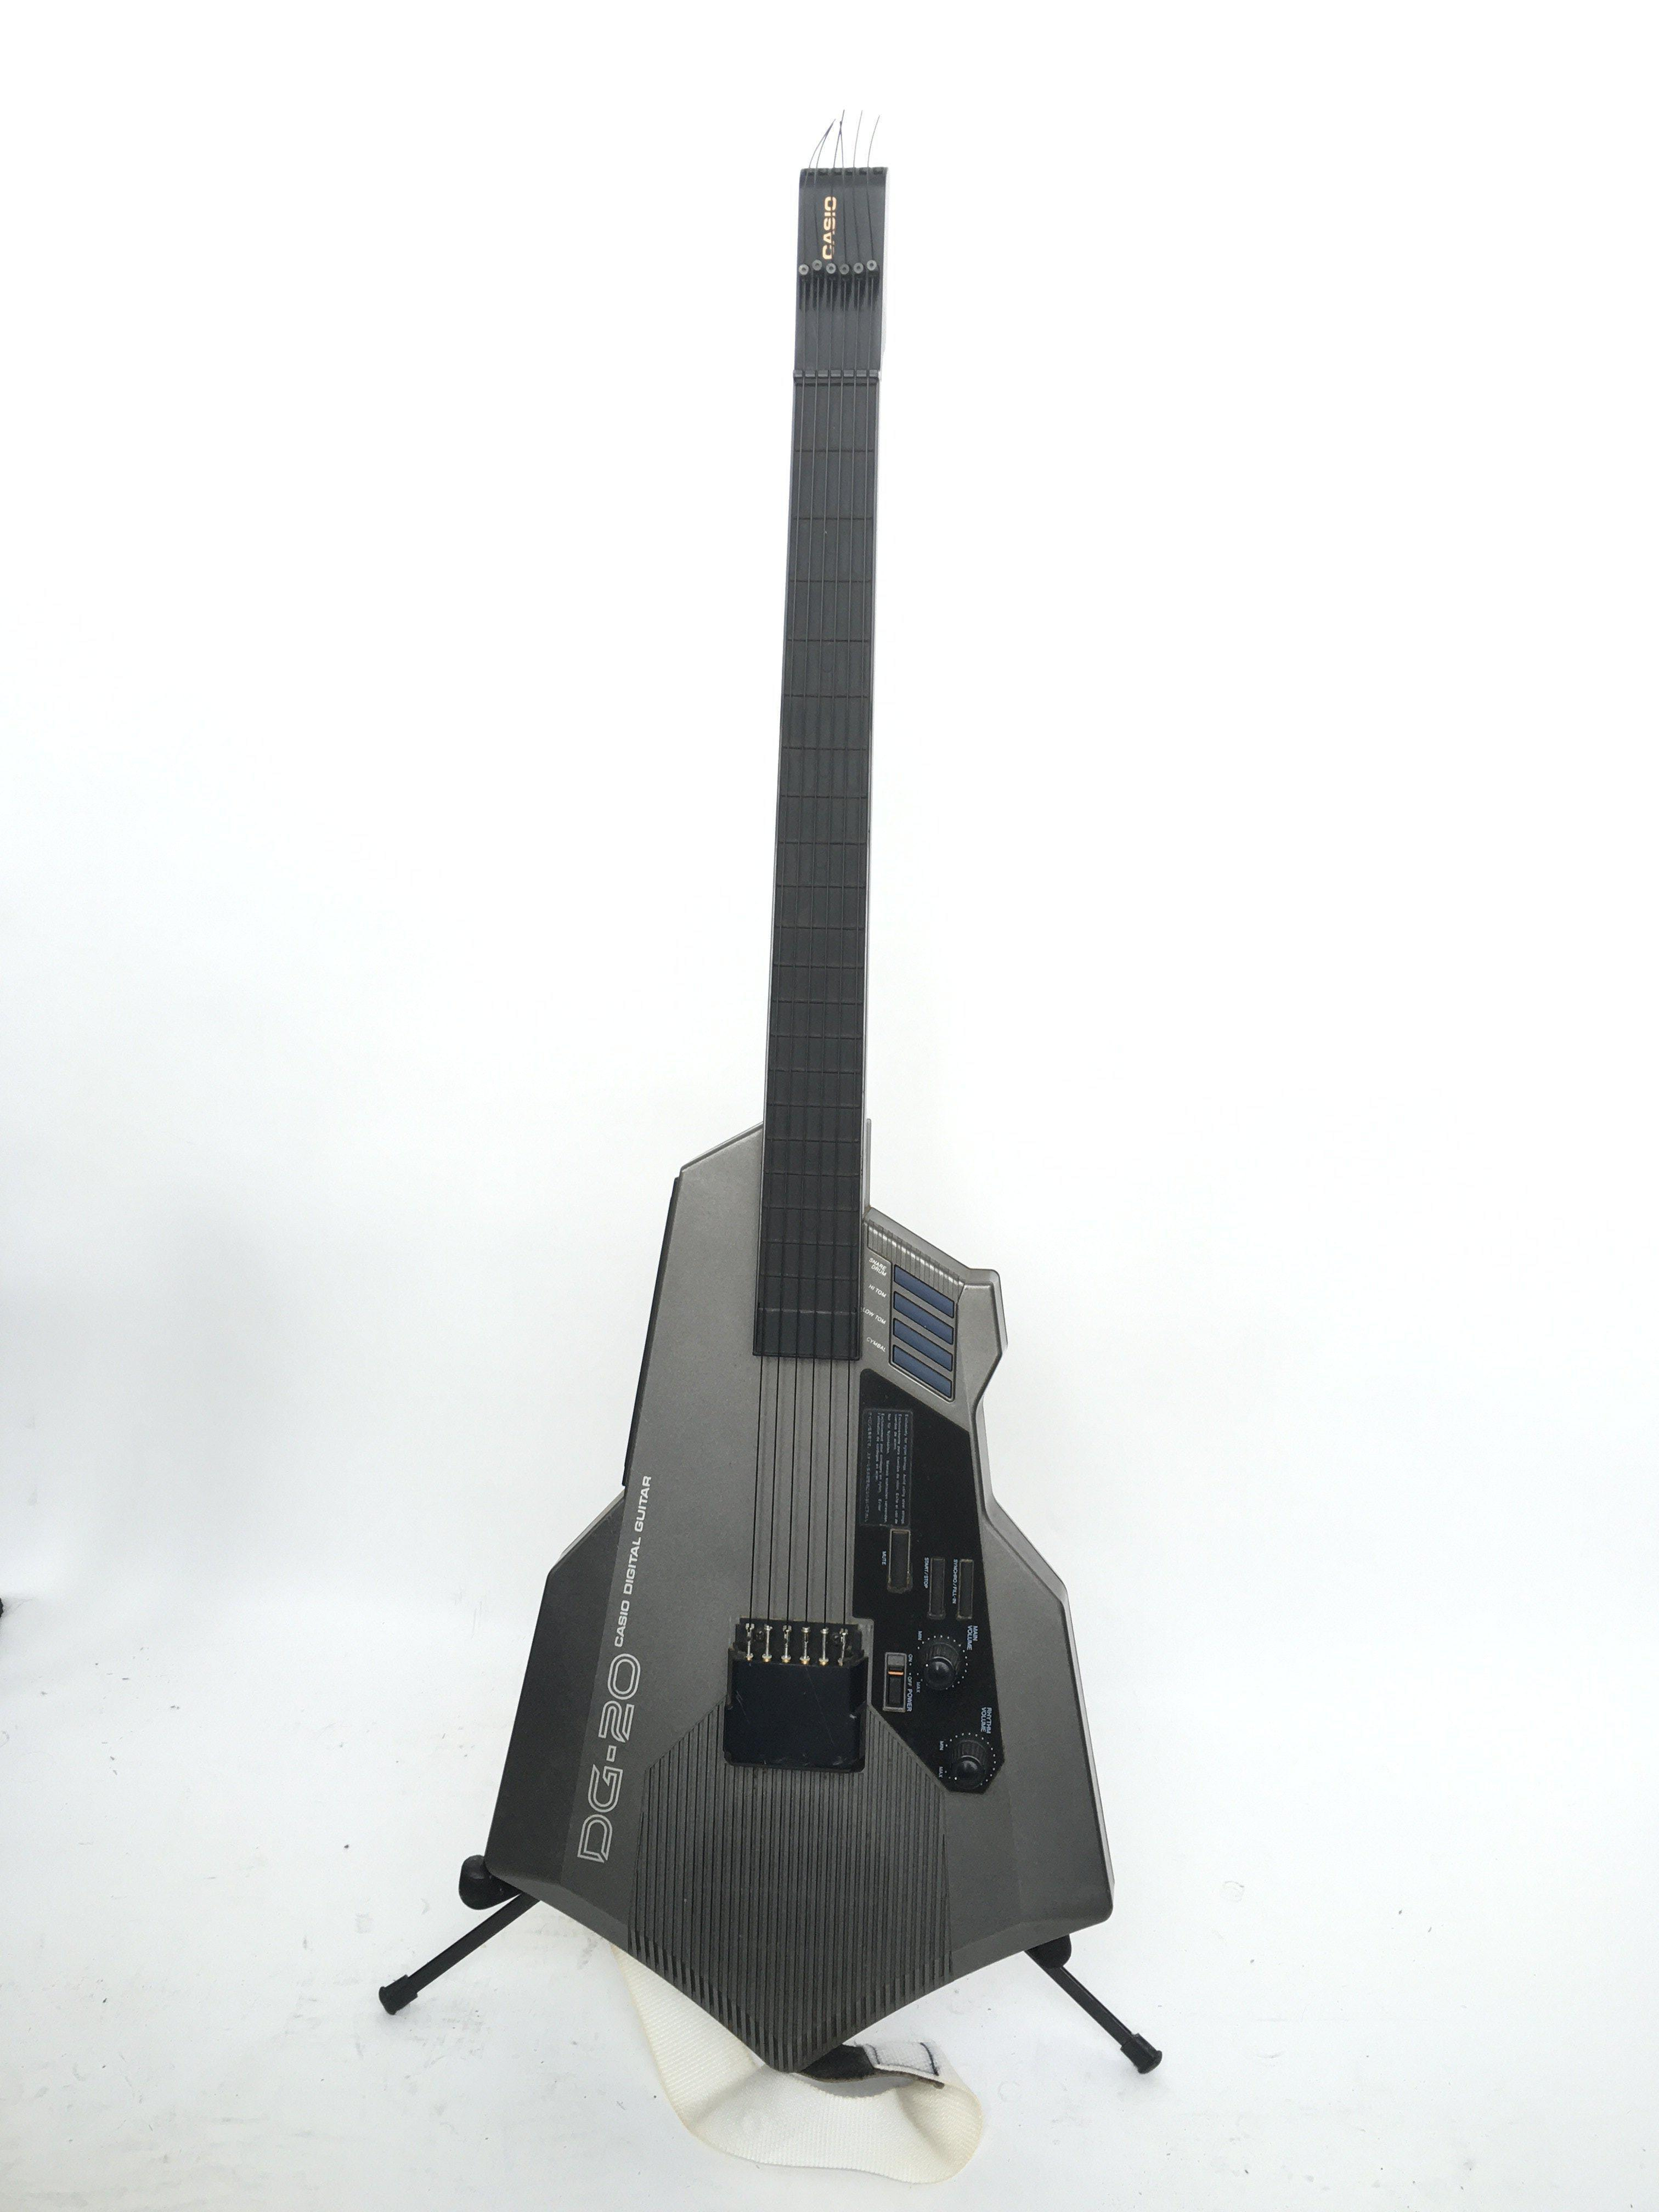 A Casio DG20 synth guitar. Comes supplied with a h